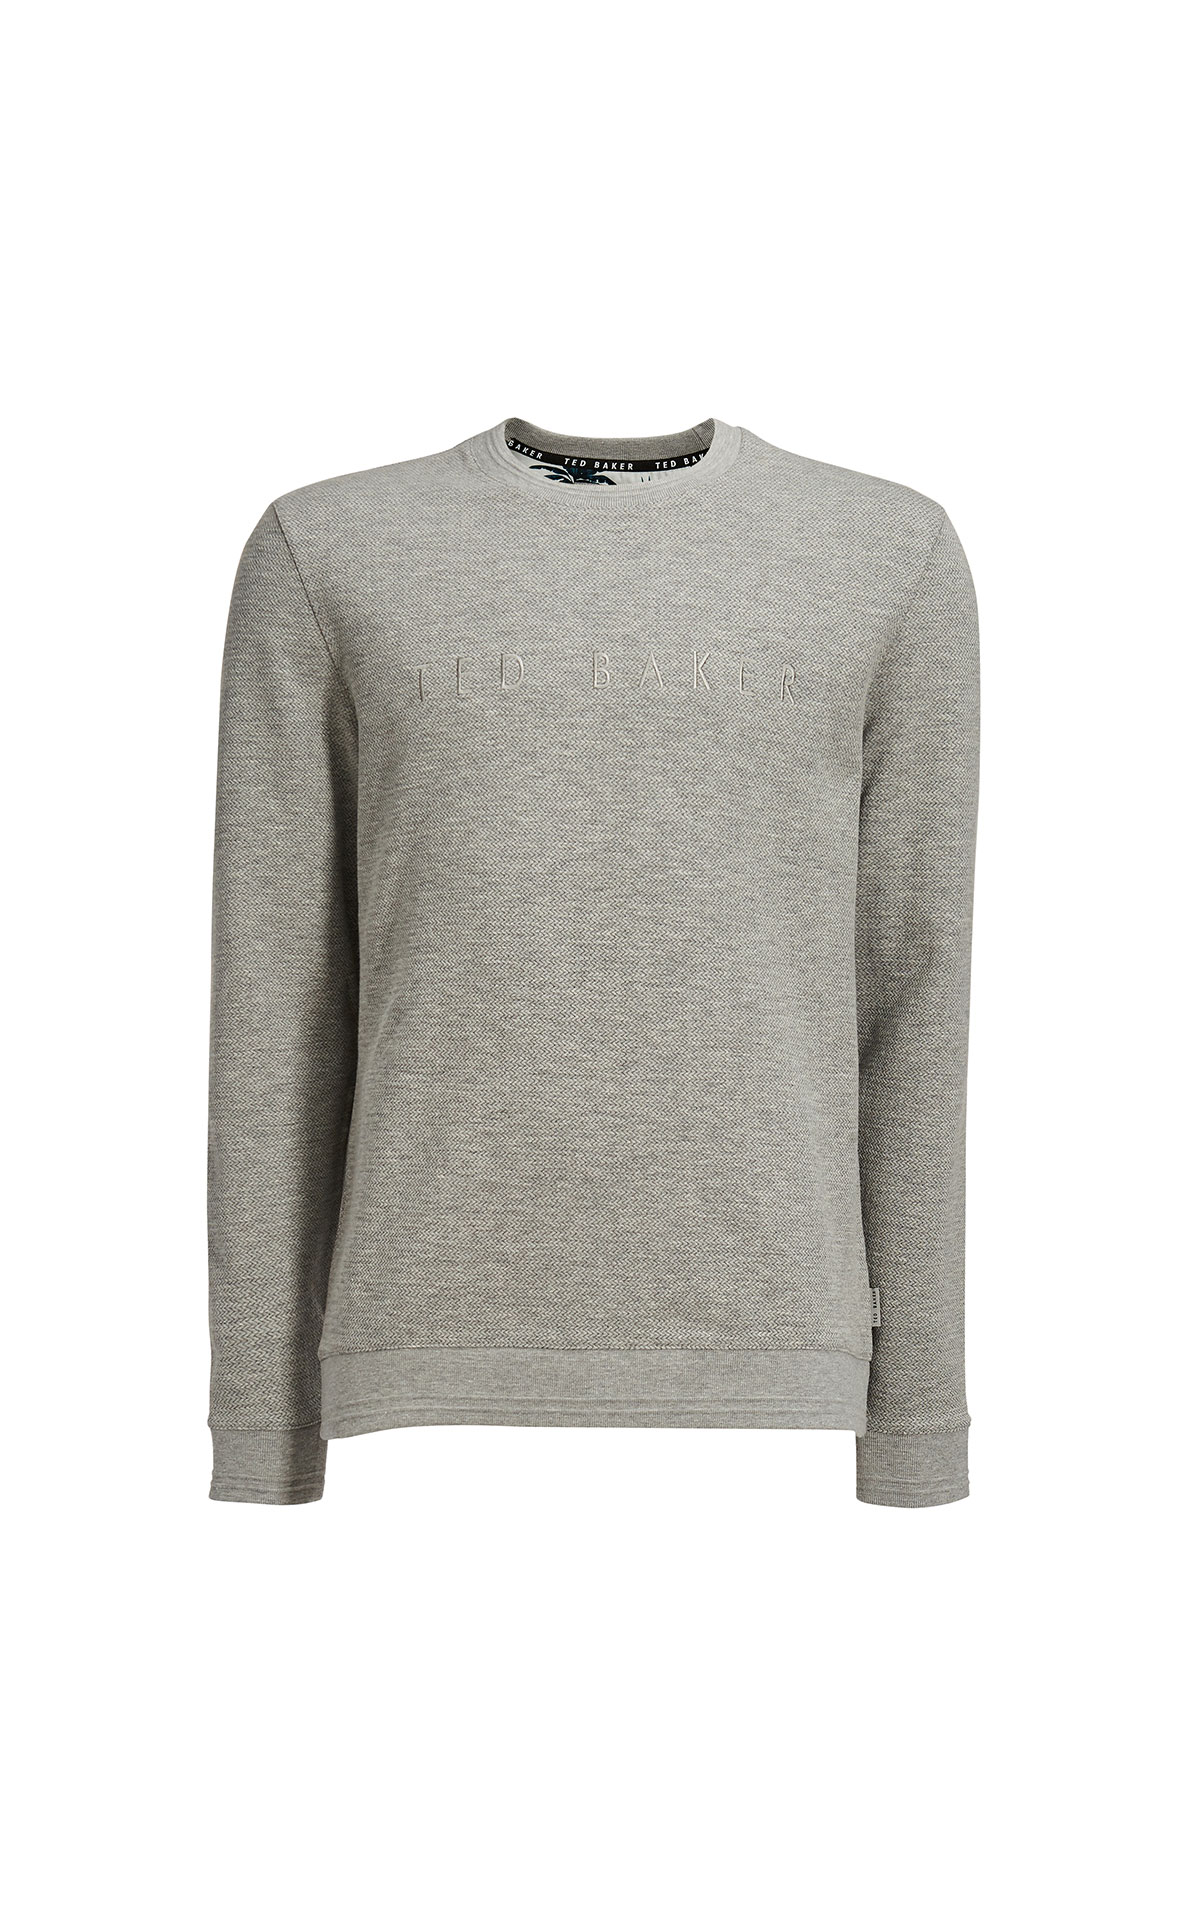 Ted Baker Porin grey branded sweatshirt from Bicester Village